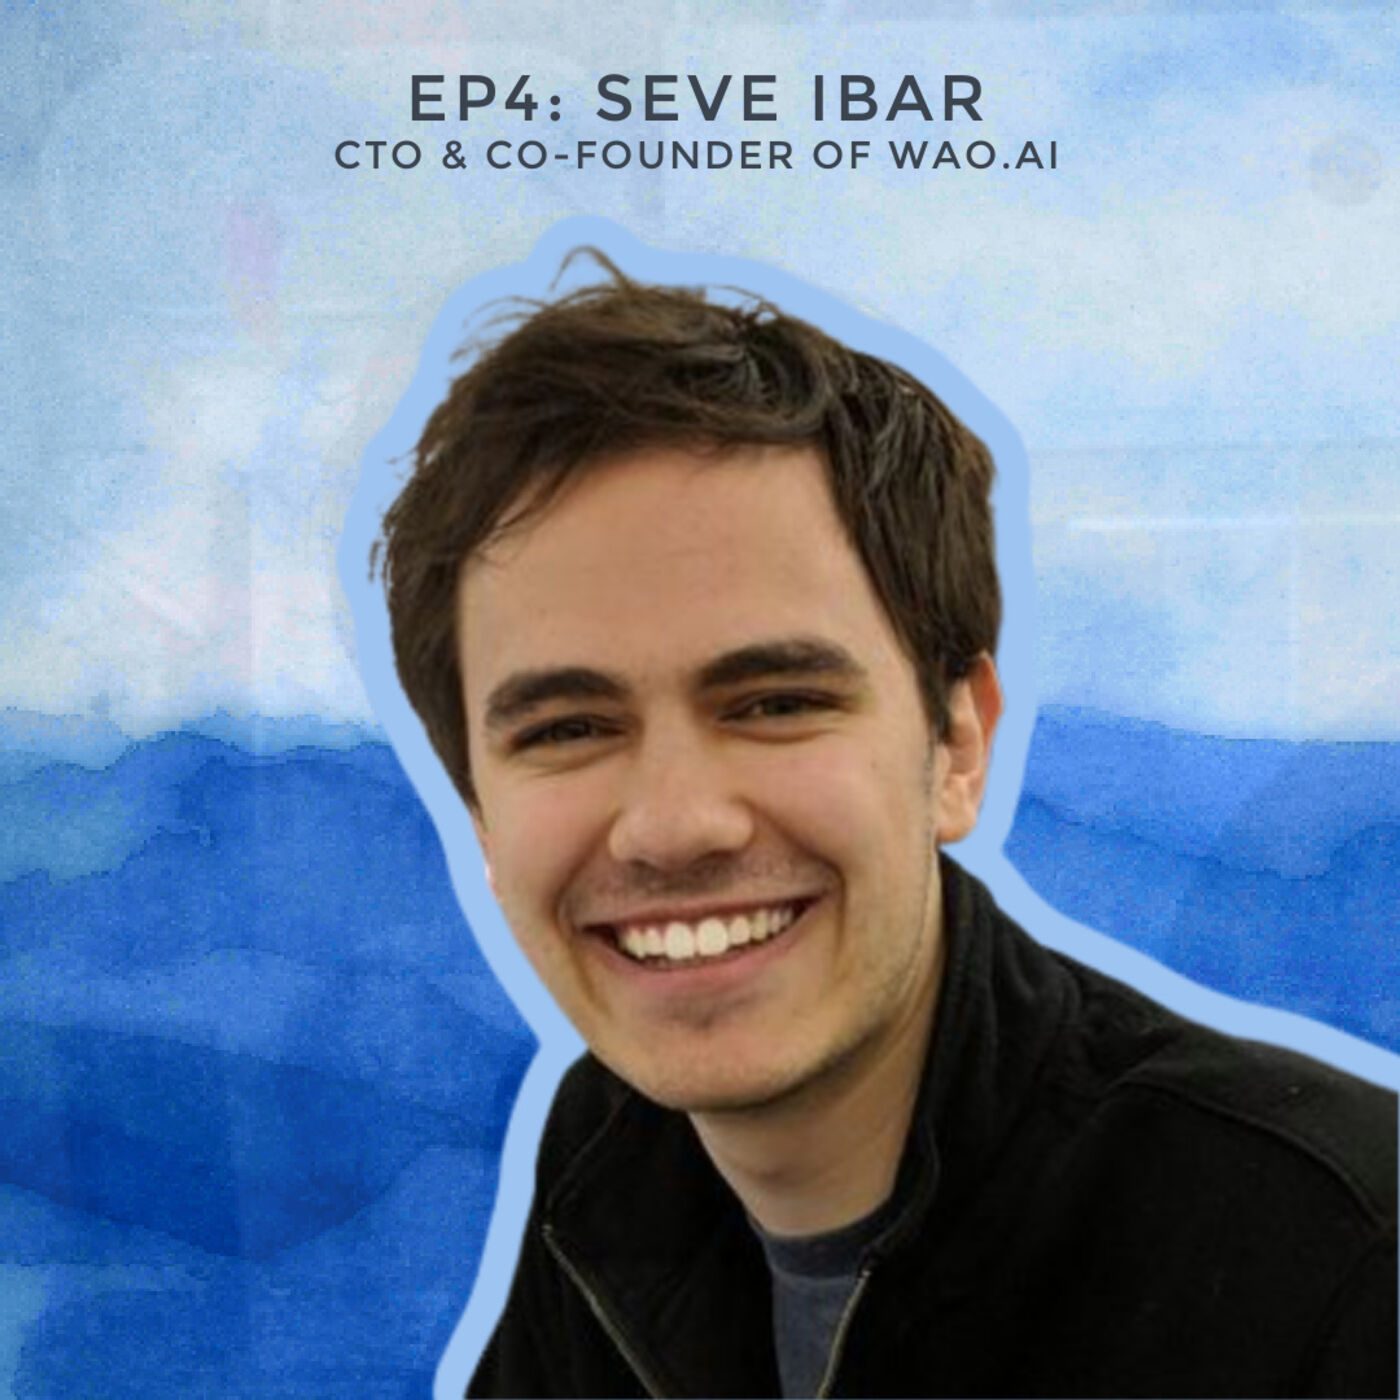 The Early-Stage Startup Grind with A.I. Startup Founder Seve Ibar